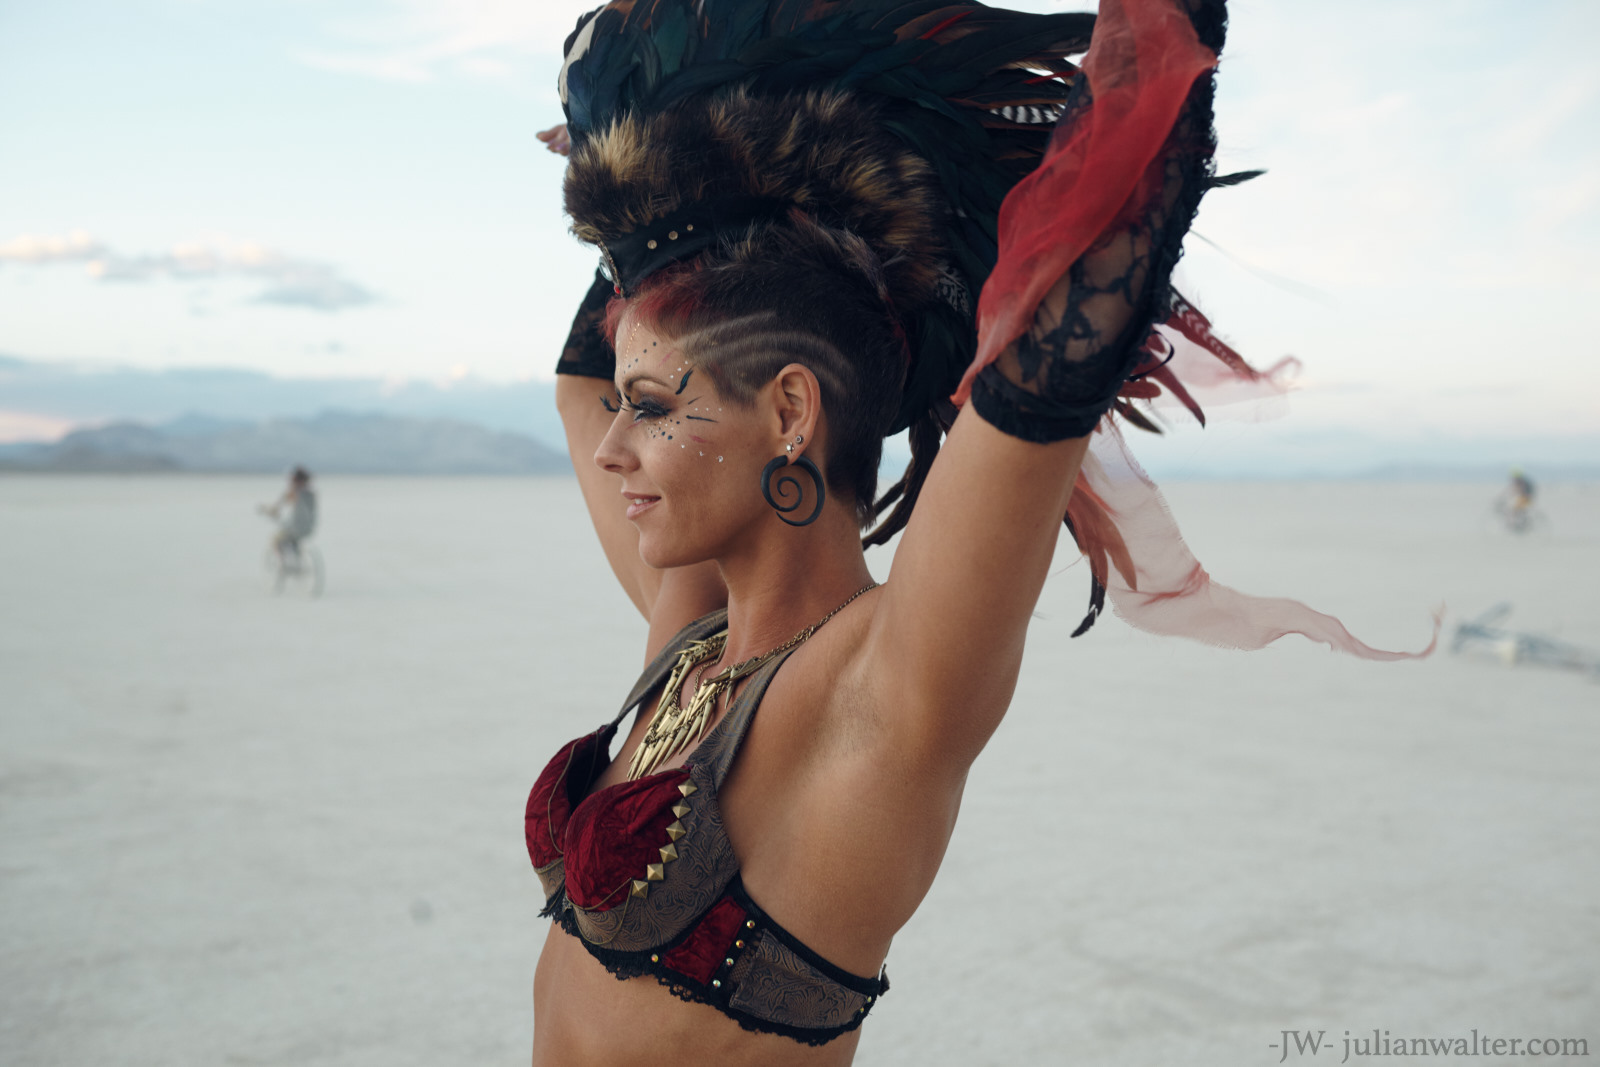 Julian Walter Photography - Burning Man 2015